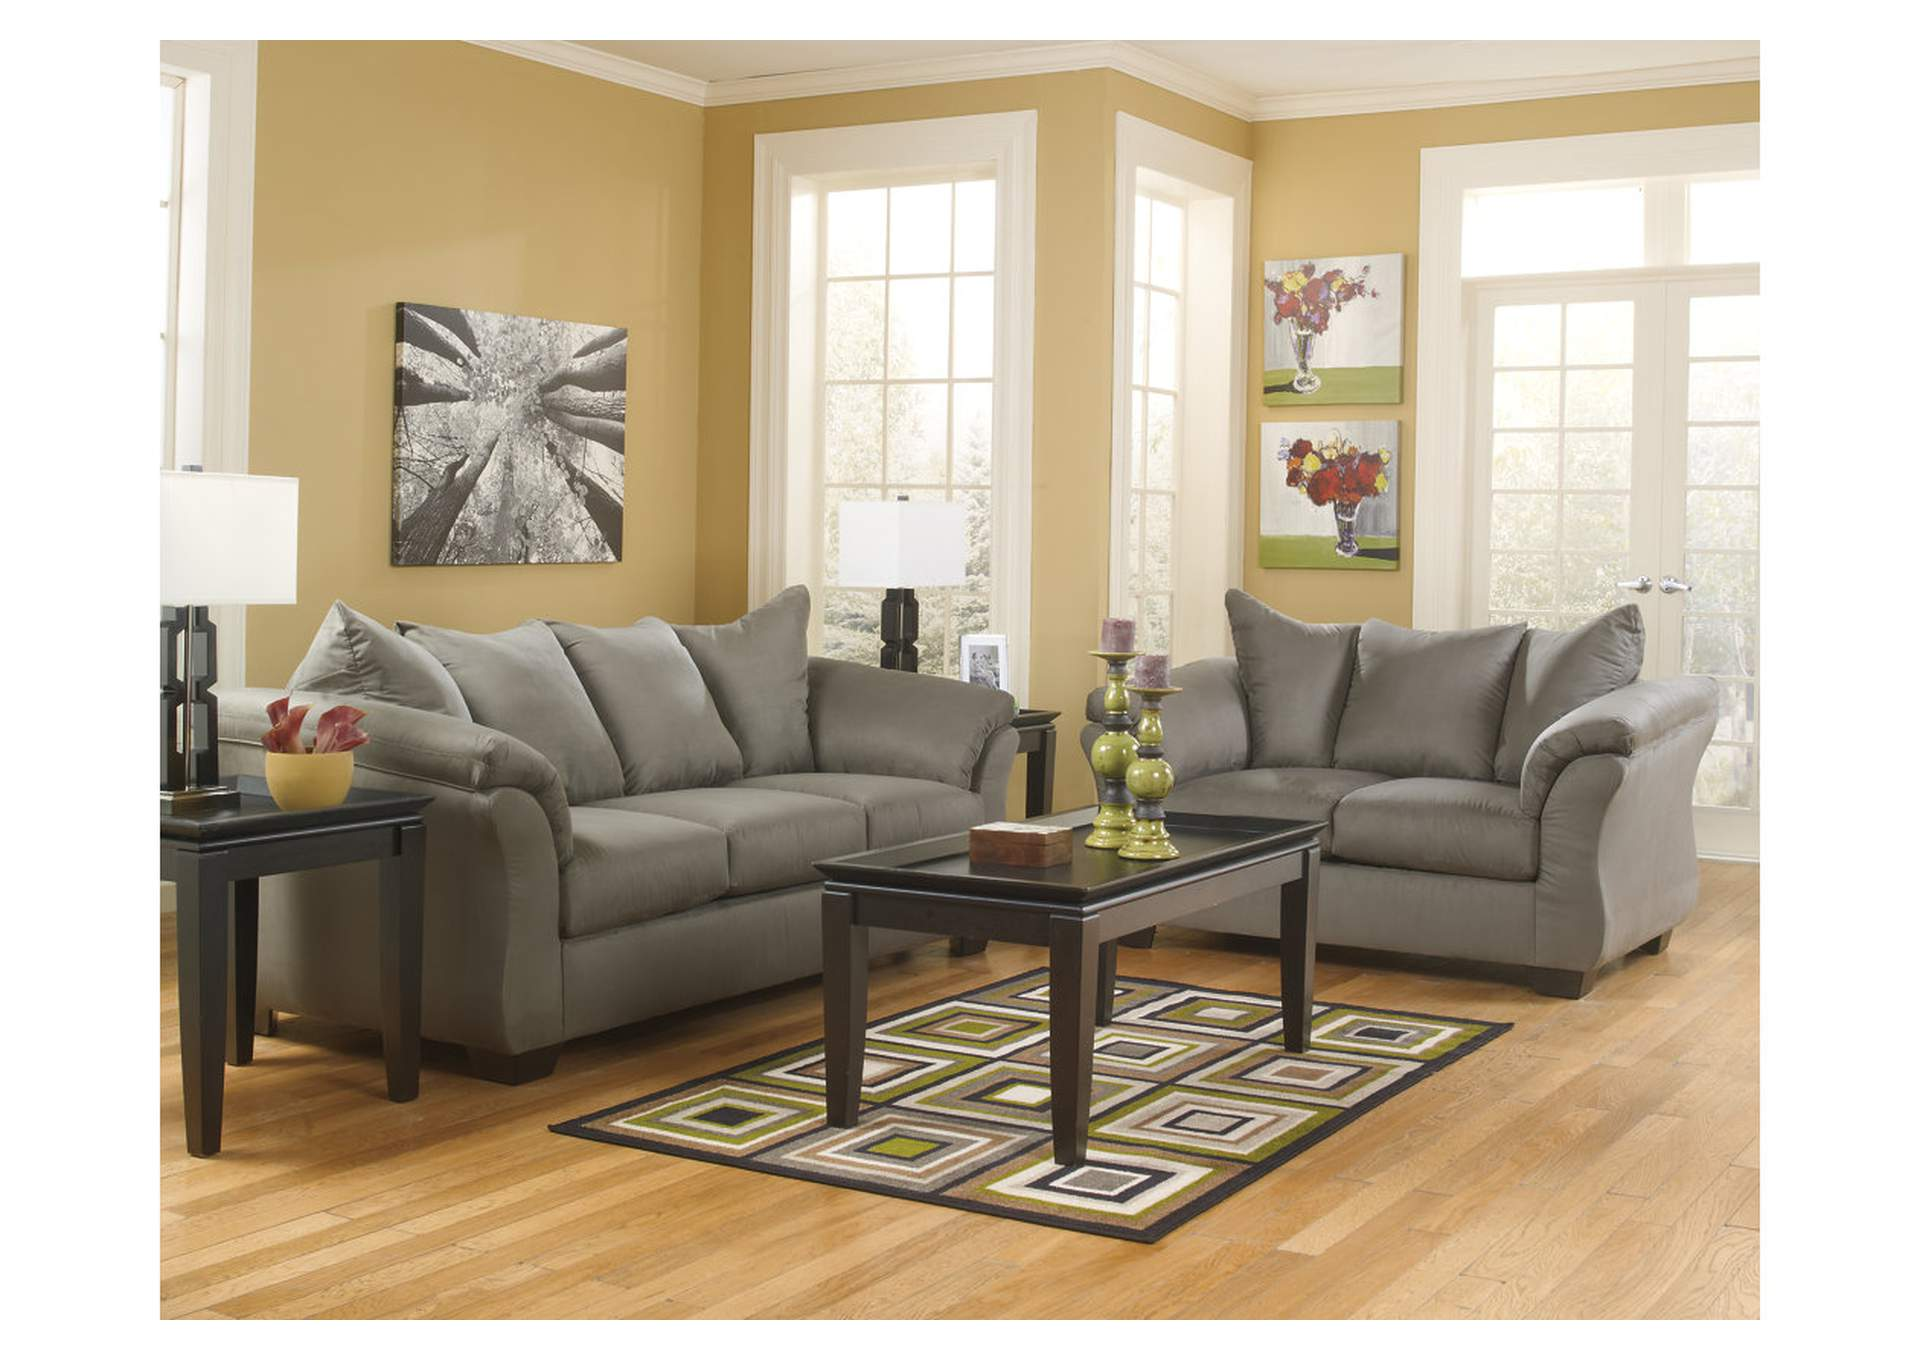 National Furniture Outlet Westwego Model National Furniture Outlet  Westwego La Darcy Cobblestone Sofa .